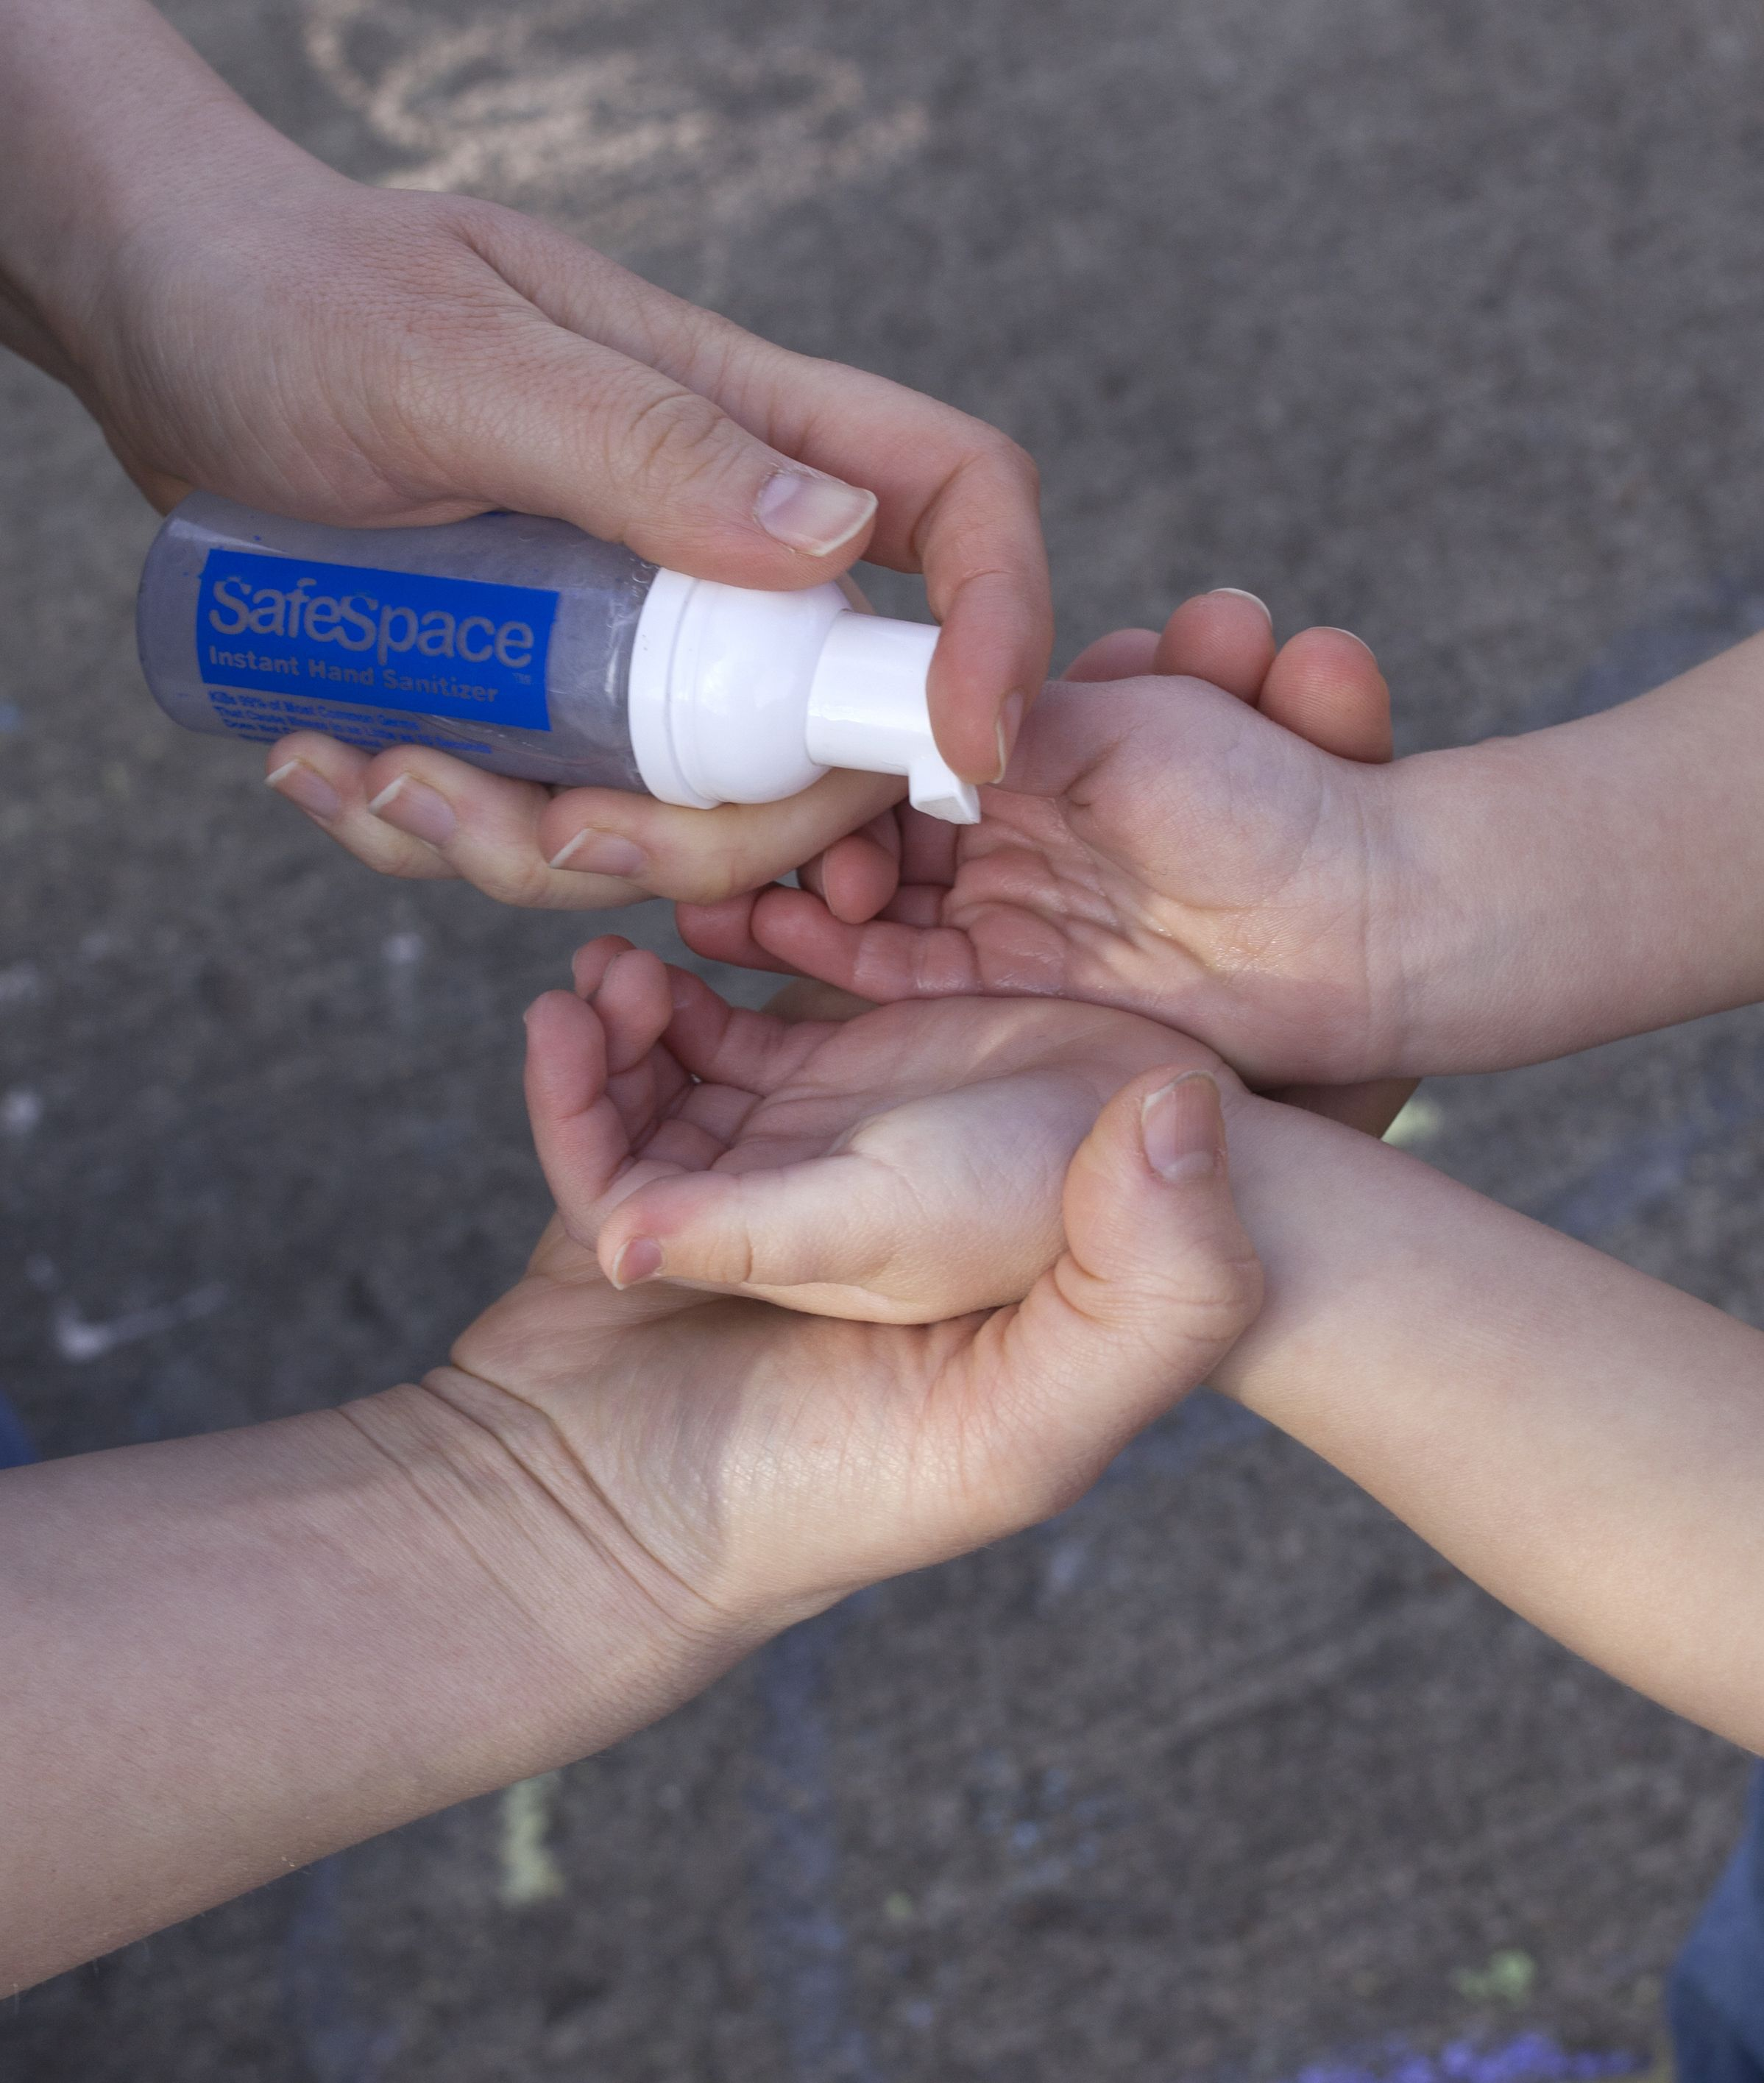 The Safespace Alcohol Free Instant Hand Sanitizer Formula